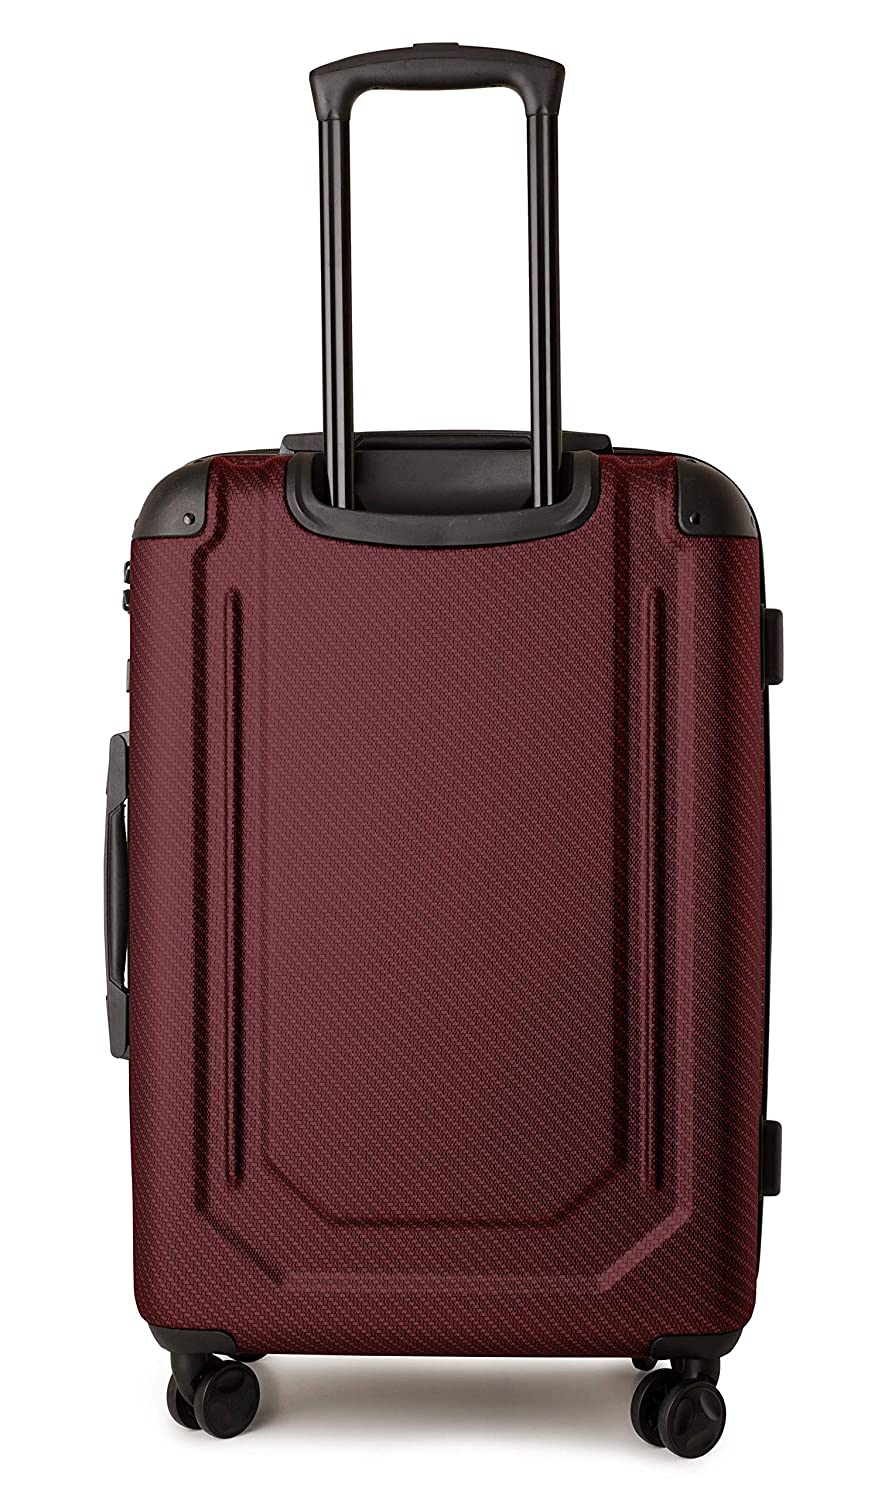 TravelCross Toulon Expandable Lightweight Hardshell Spinner Luggage Red, 25